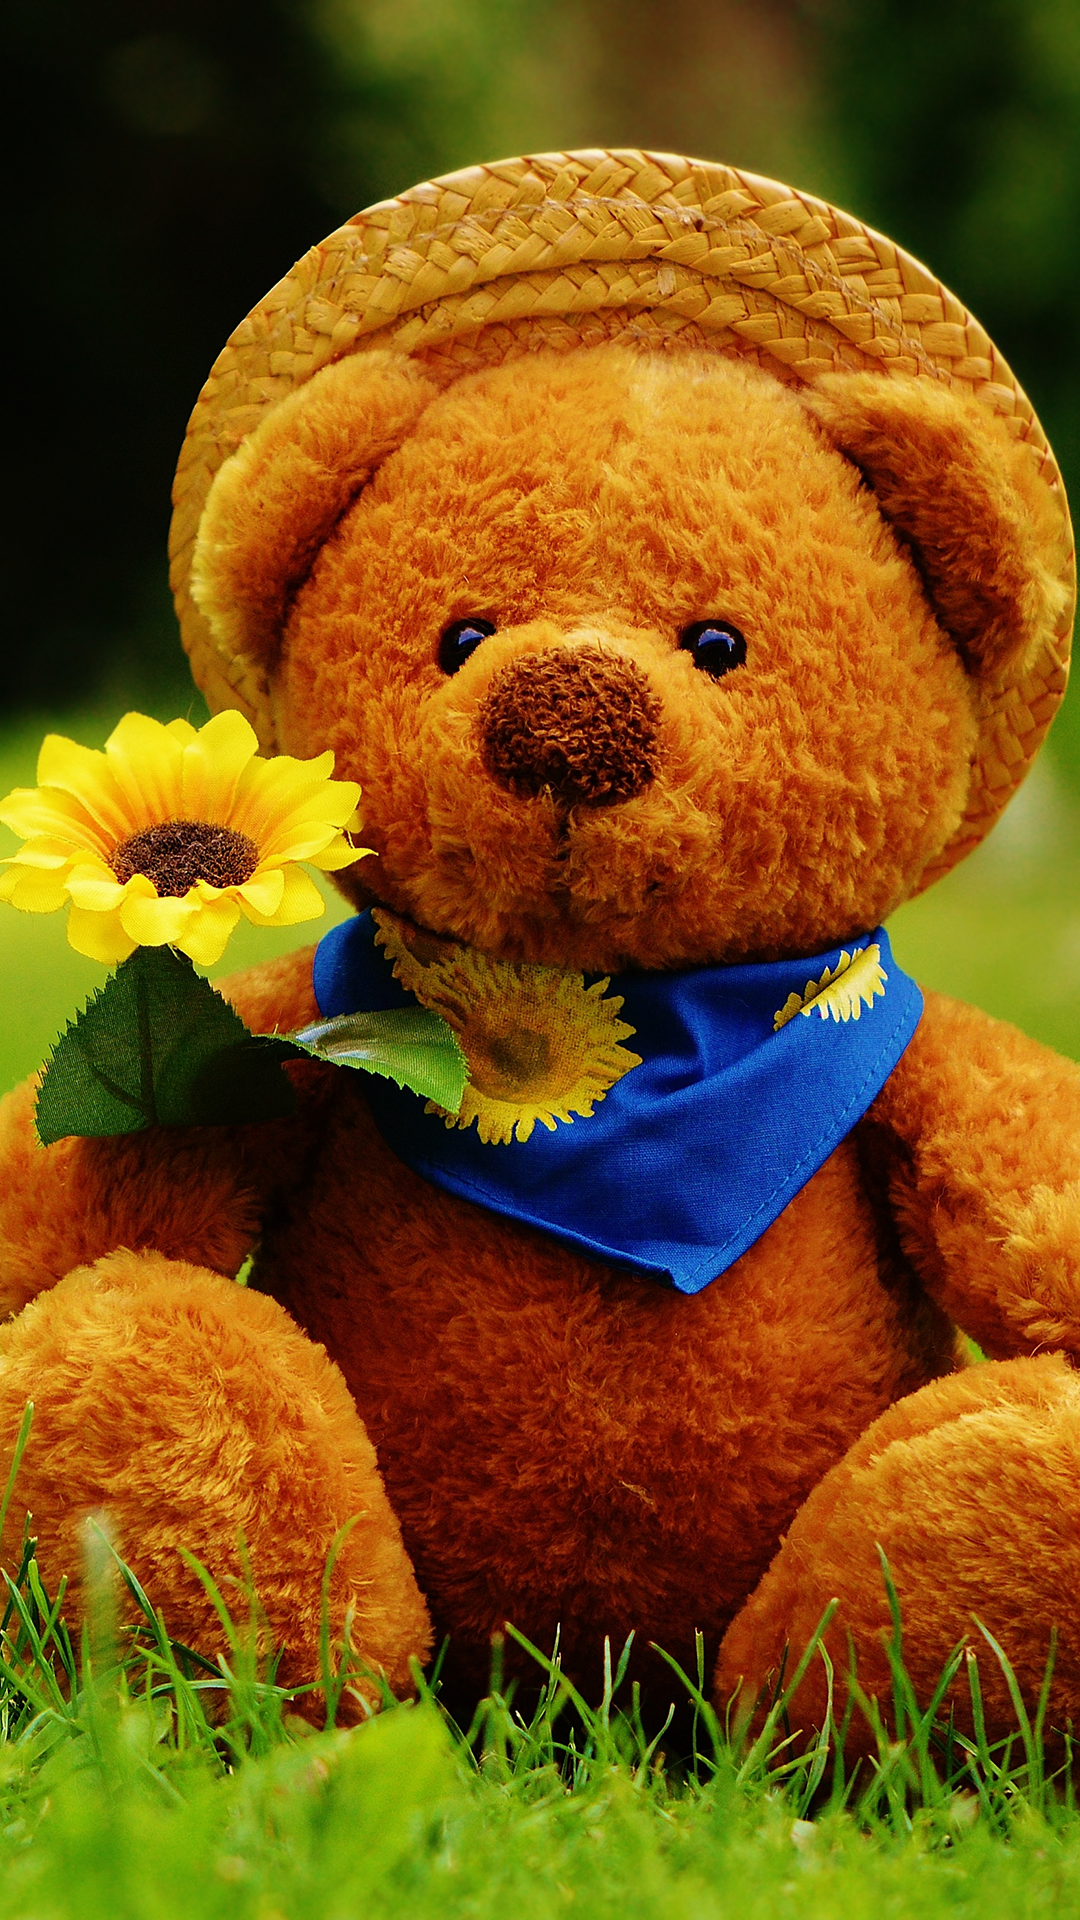 Cute Garden Teddy Bear iPhone Wallpapers. Tap to see more